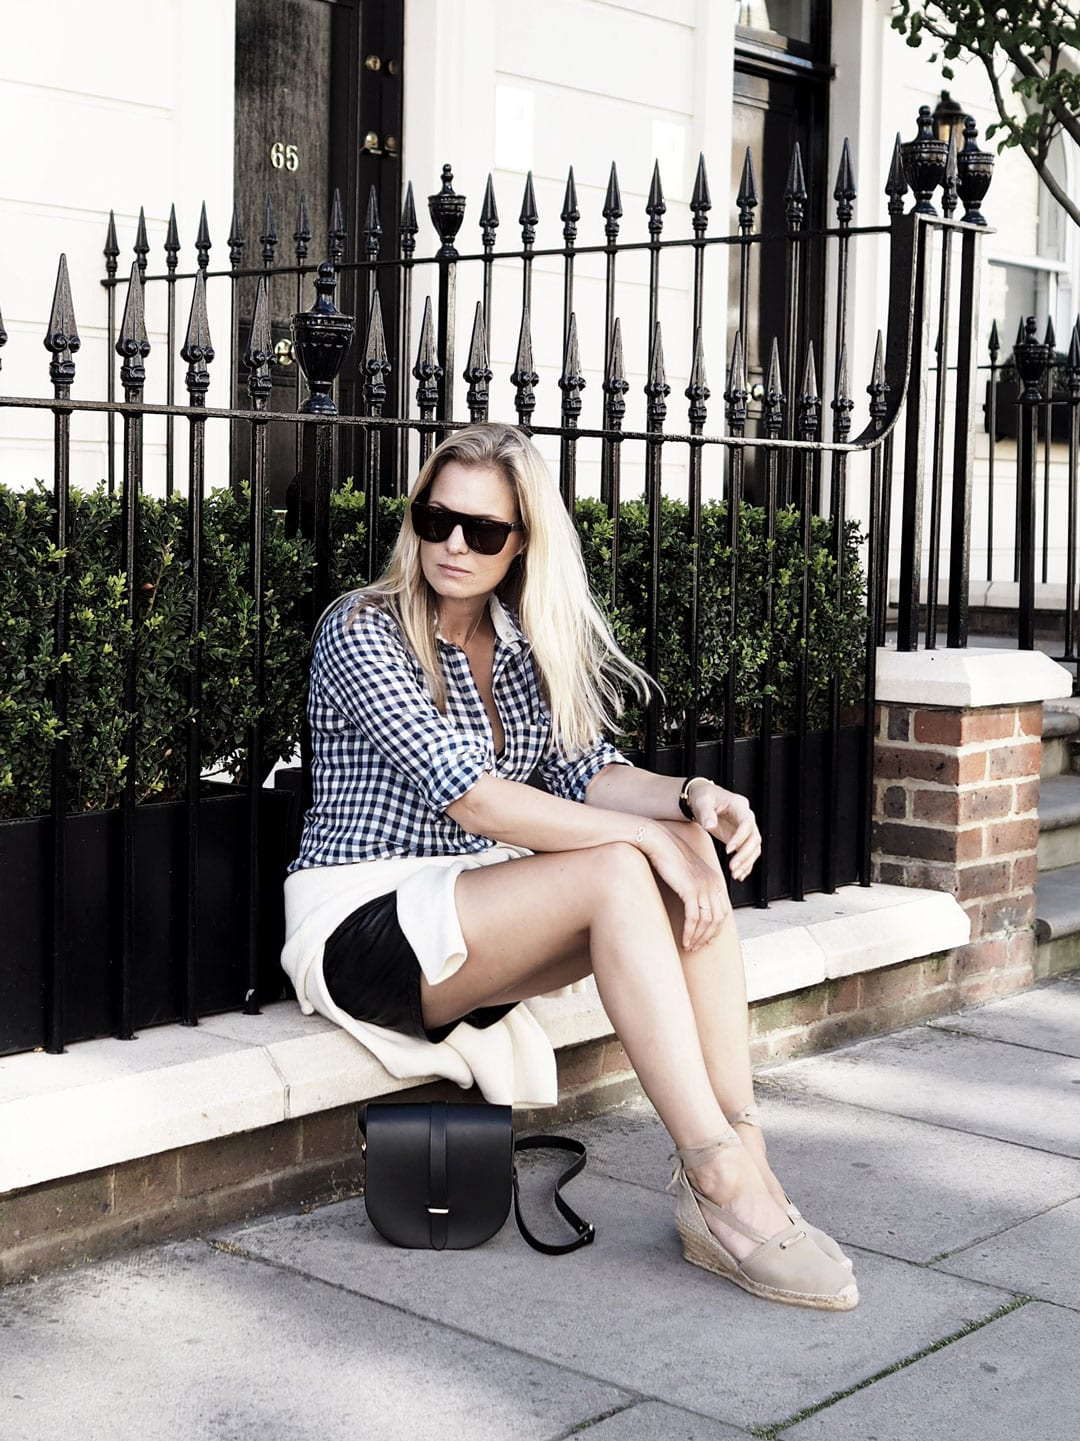 Time Keeping | Custommade Gingham Shirt, Pepe Leather Skirt, Penelope Chilvers Espadrilles